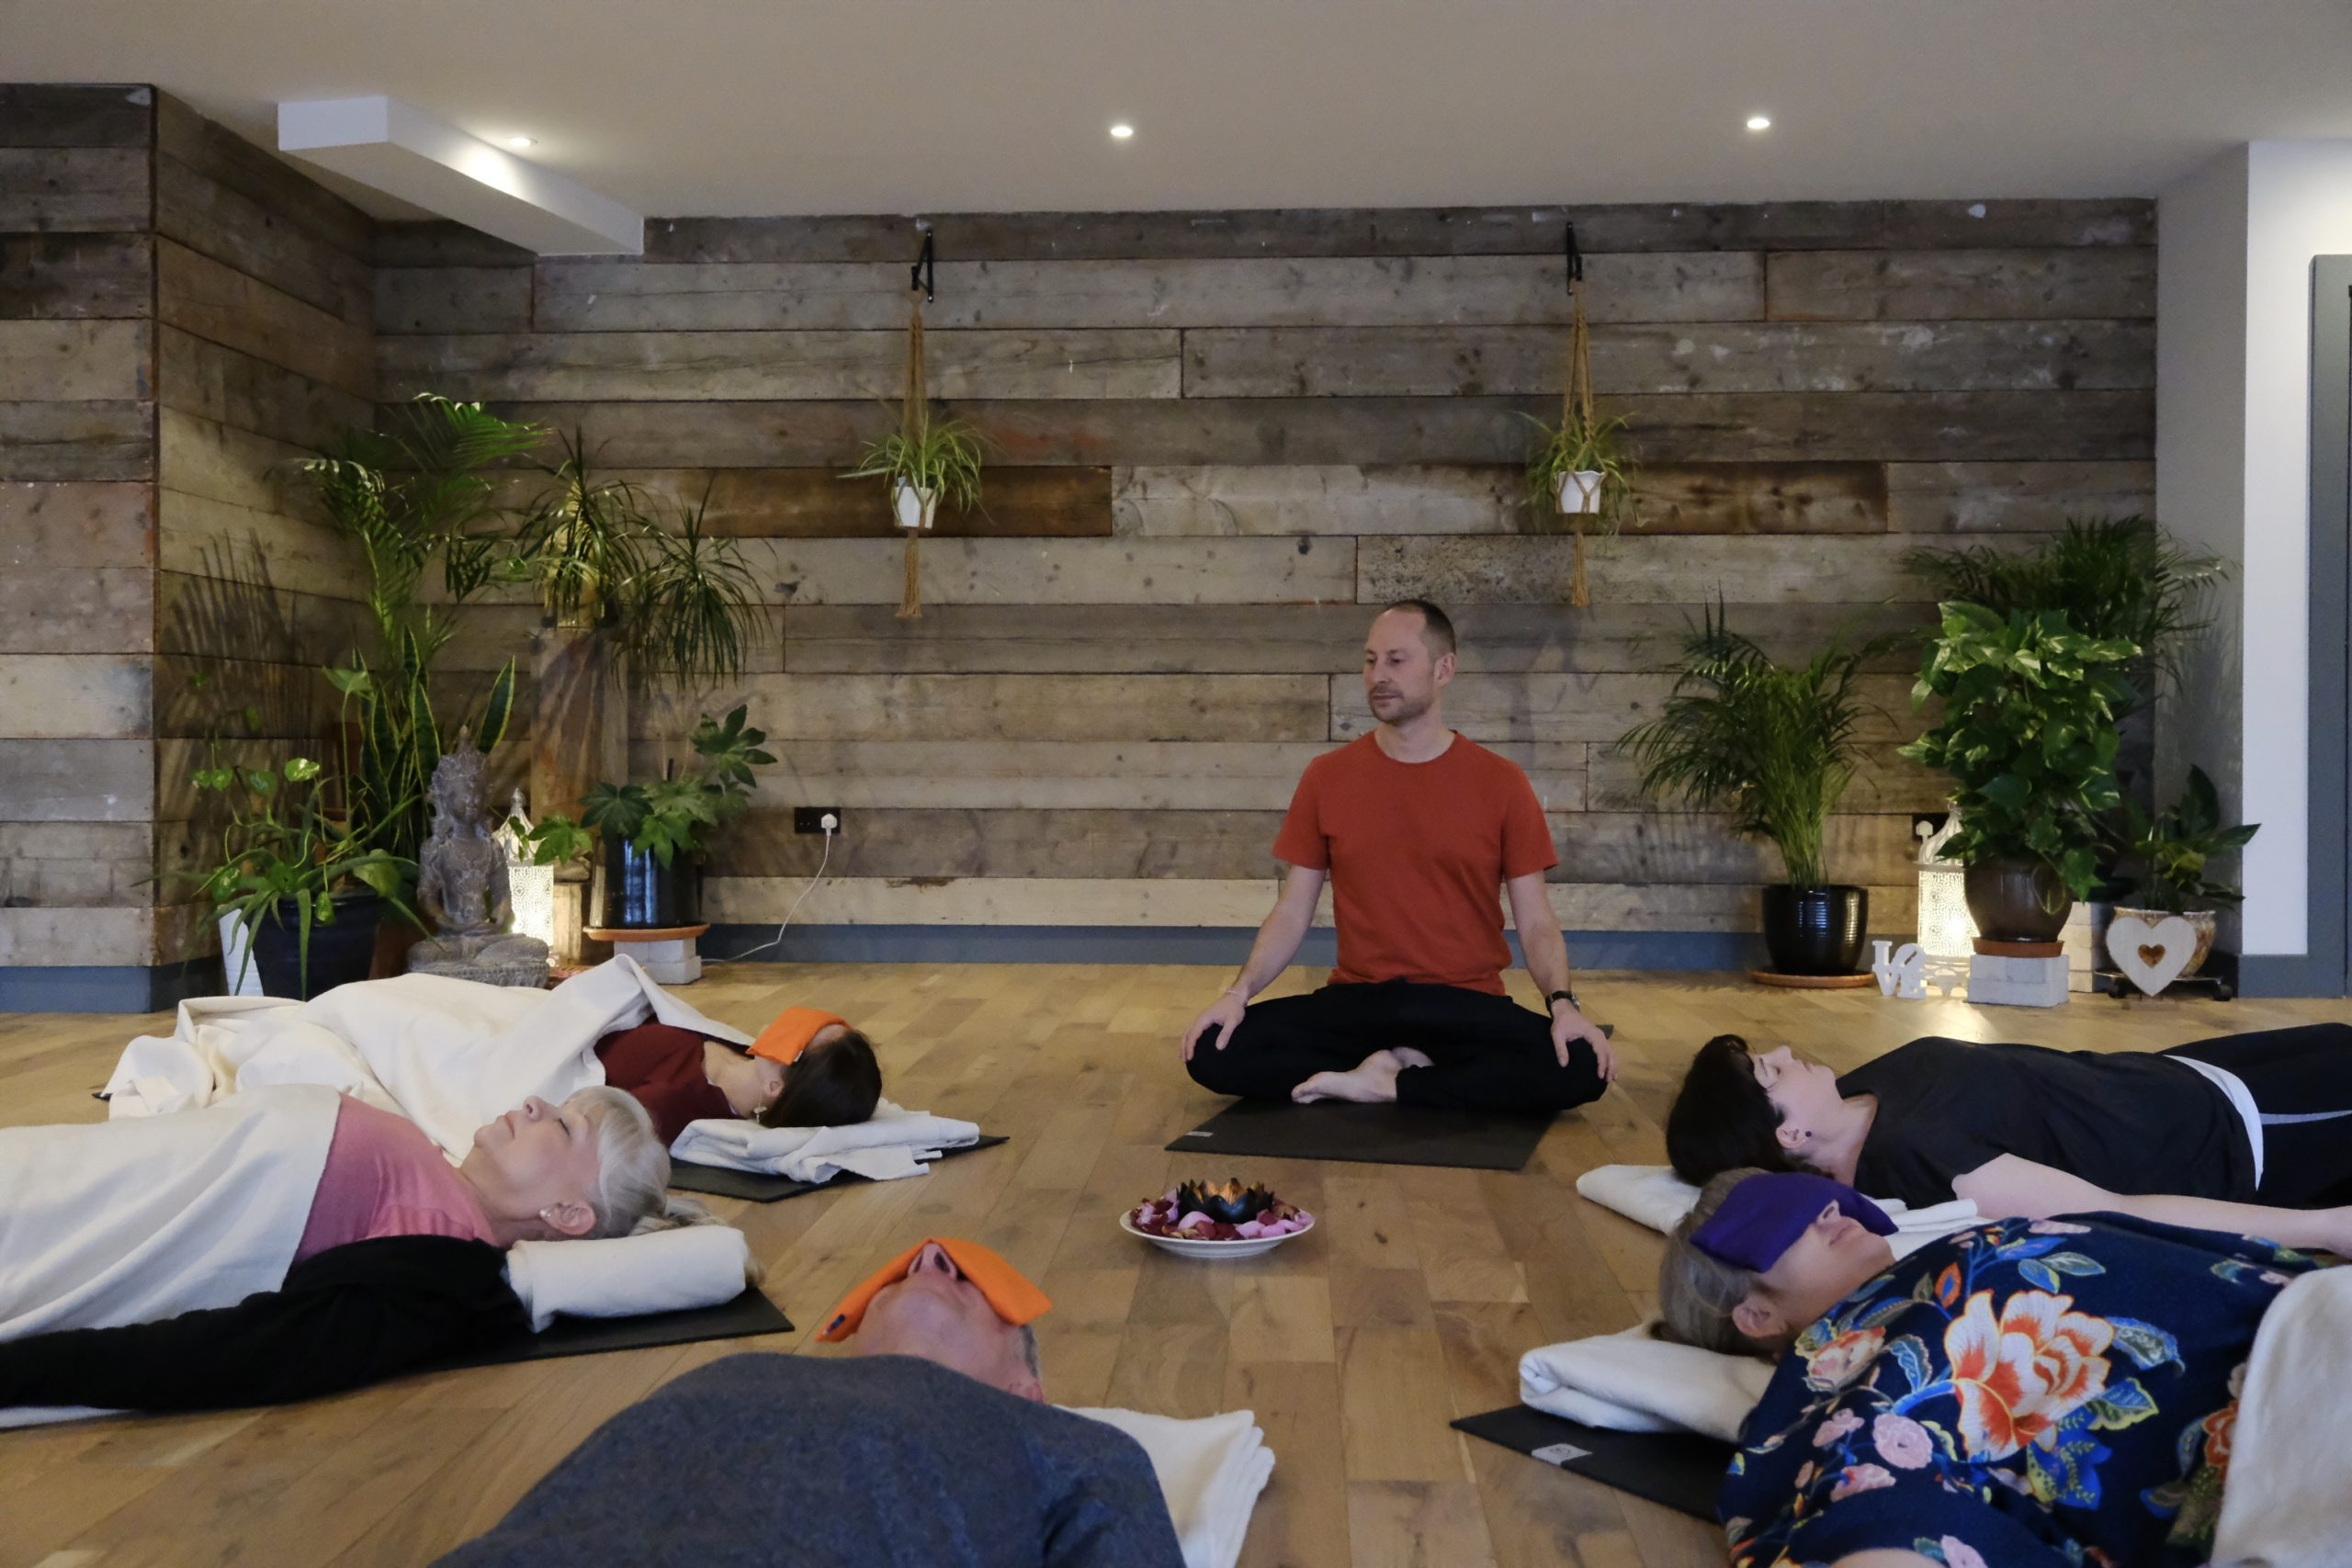 Daniel Groom teaching yoga nidra